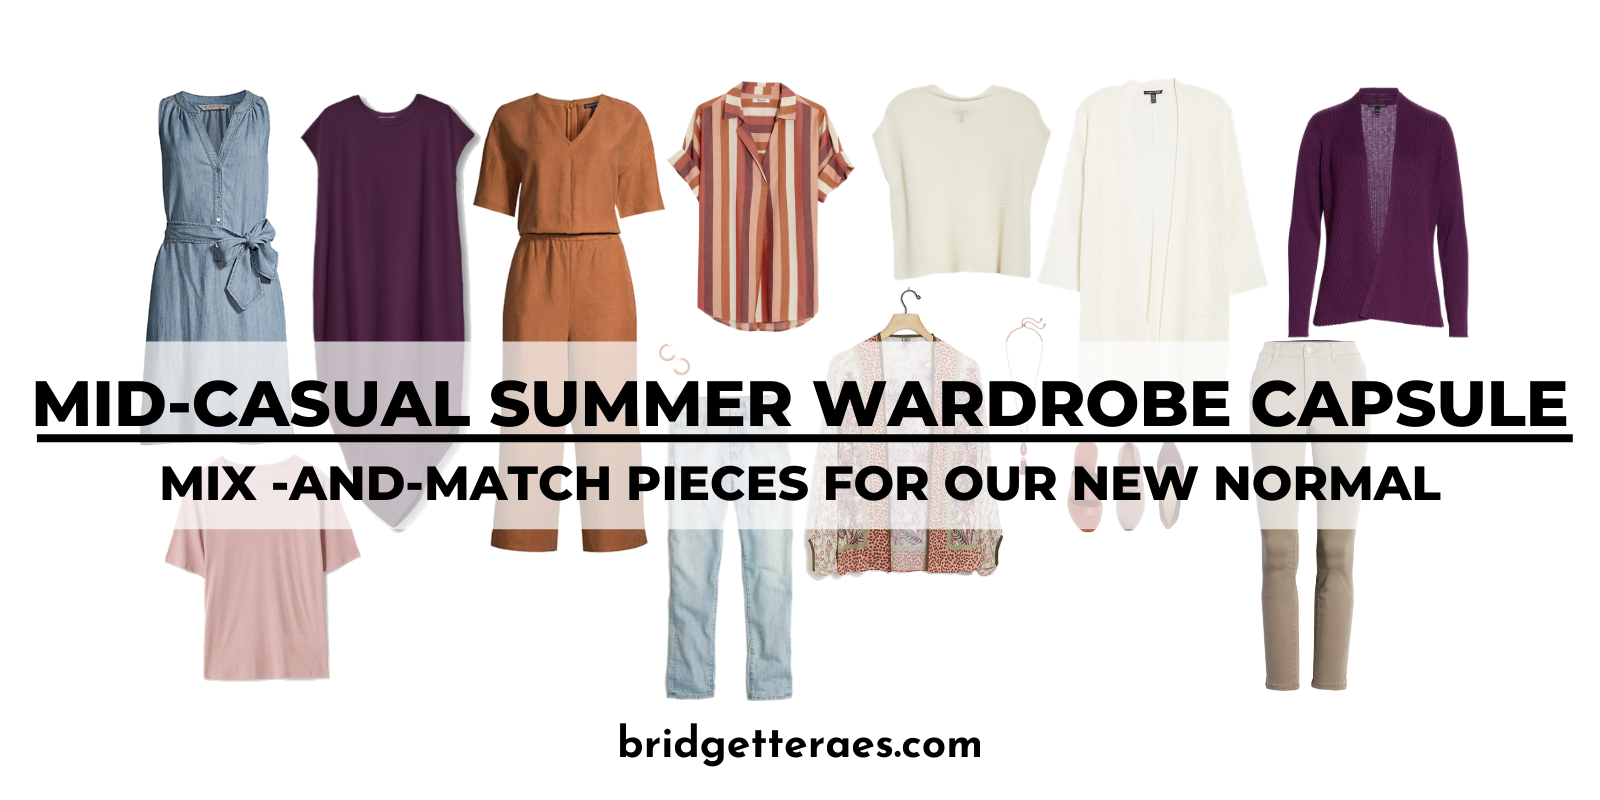 Mid-Casual Summer Wardrobe Capsule: Mix-and-Match for Our New Normal